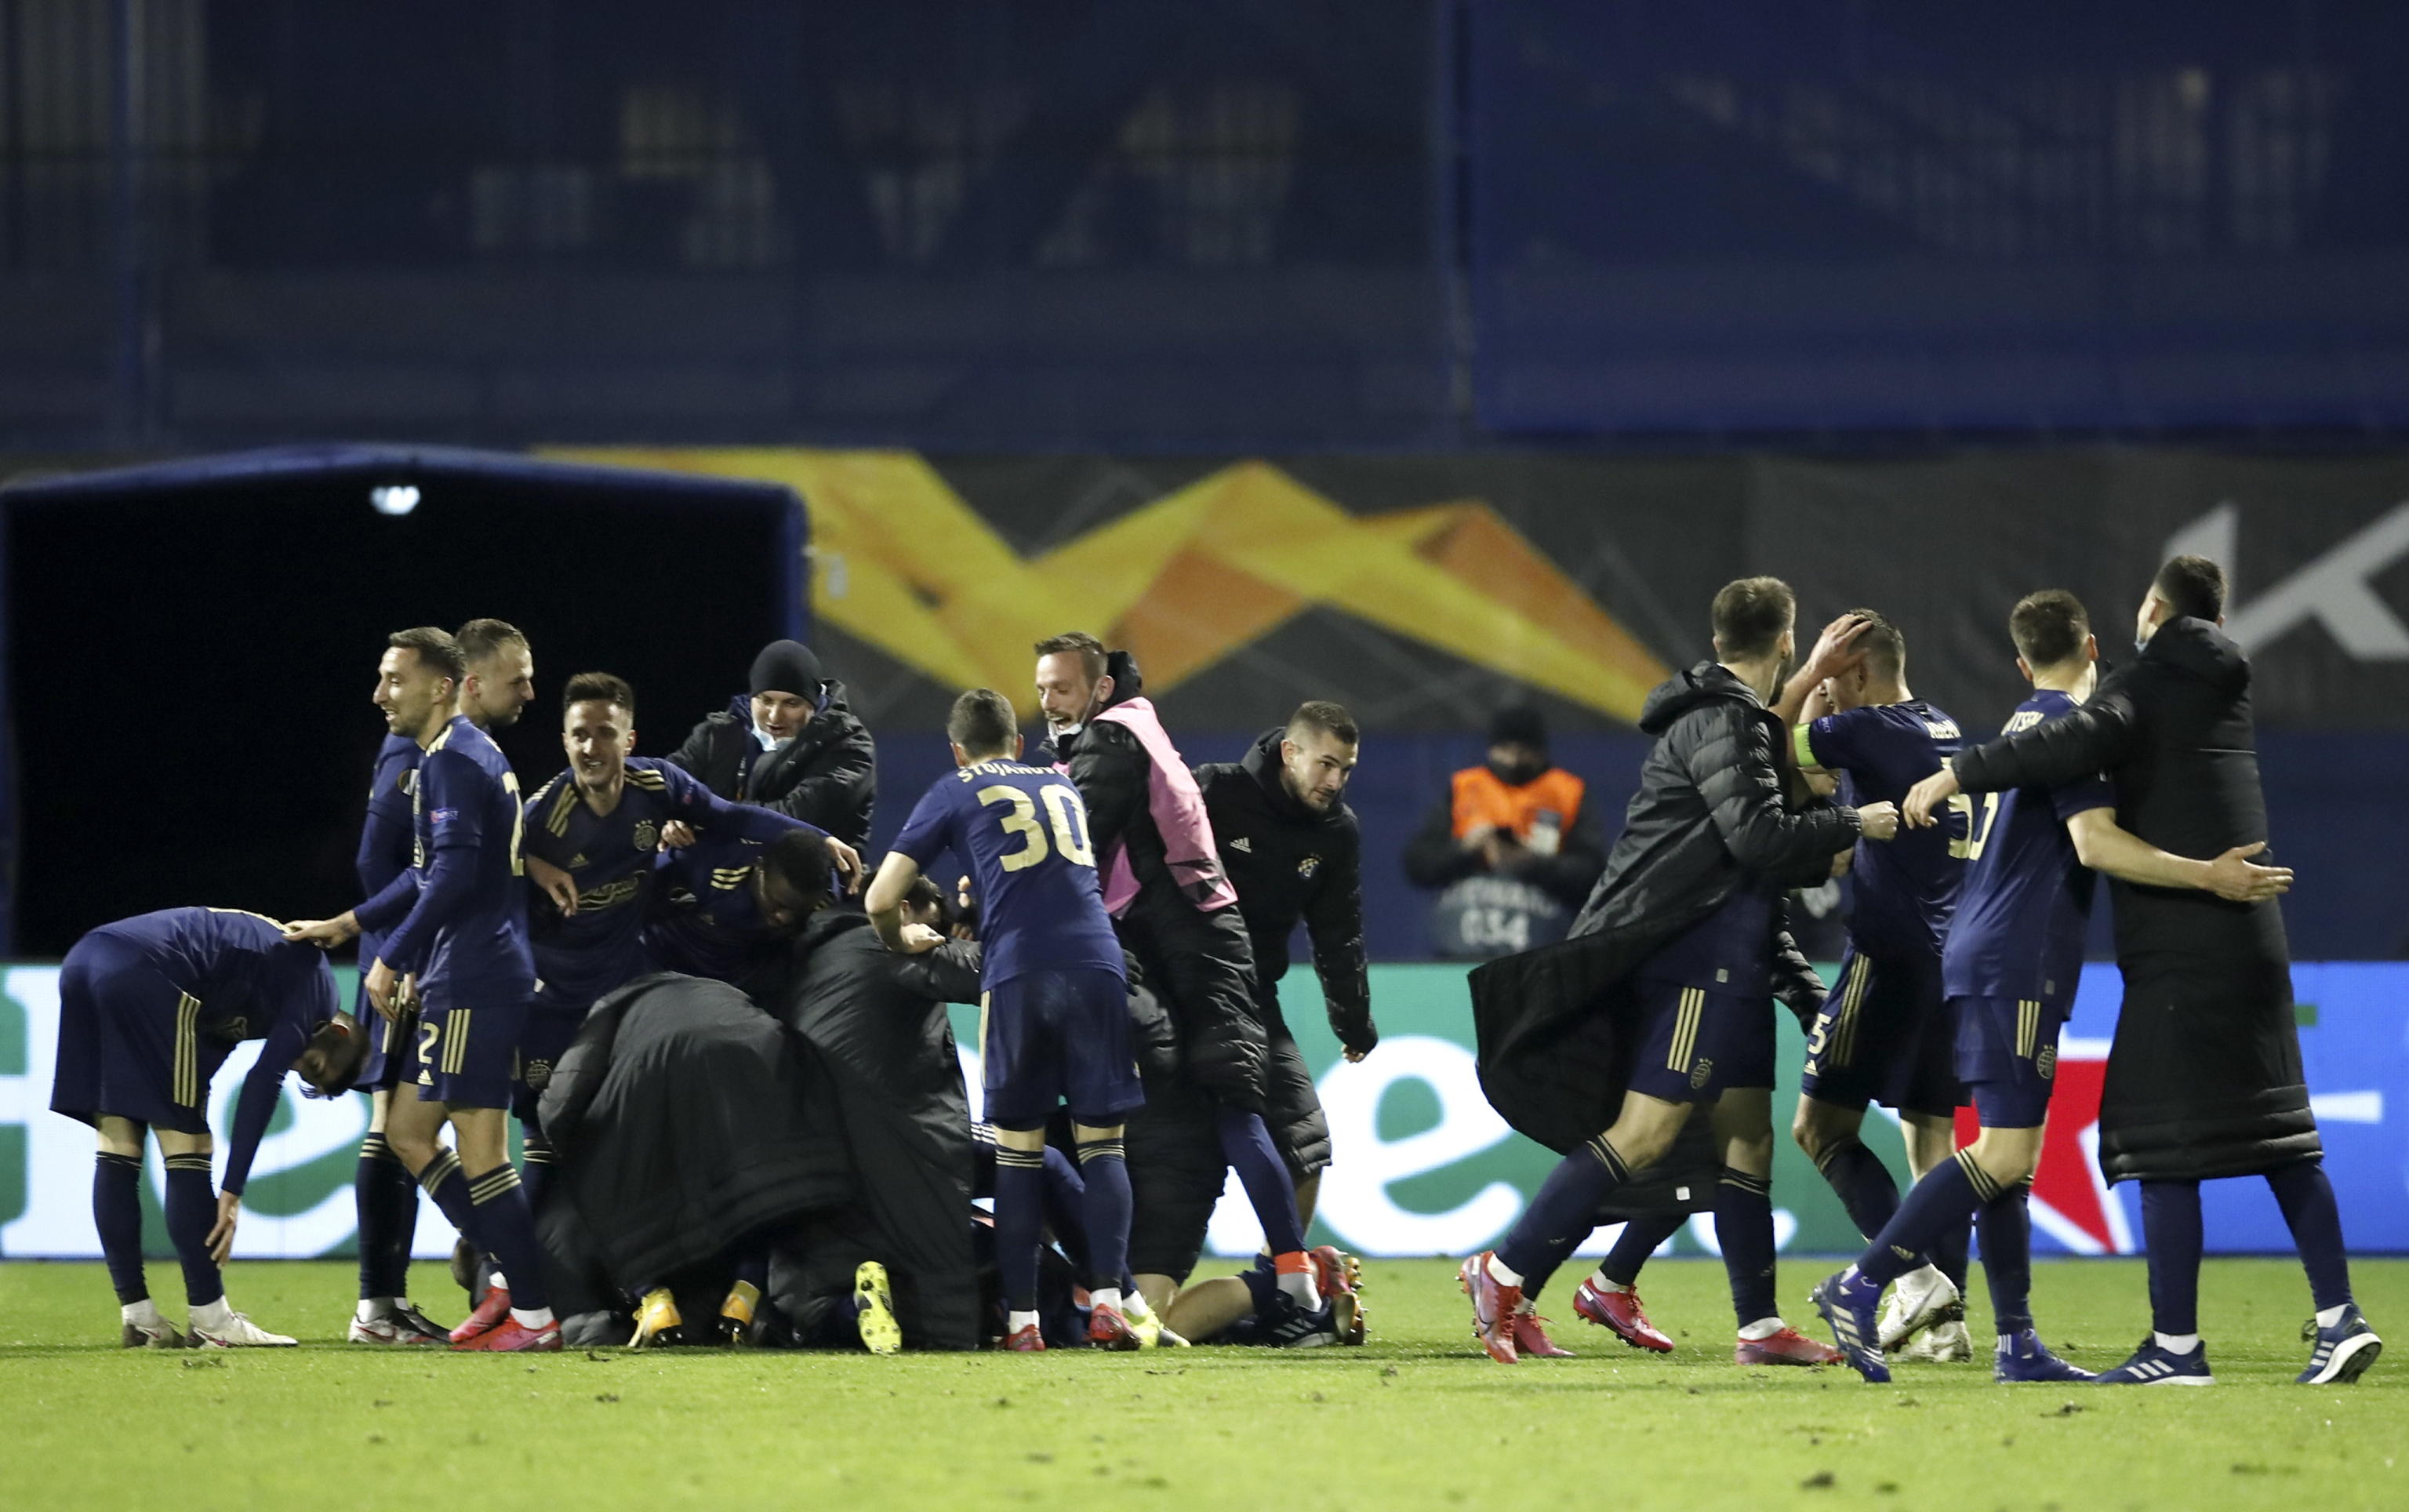 epa09082846 Players of Zagreb celebrate the 3-0 lead during the UEFA Europa League Round of 16, second leg match between Dinamo Zagreb and Tottenham Hotspur in Zagreb, Croatia, 18 March 2021.  EPA/ANTONIO BAT